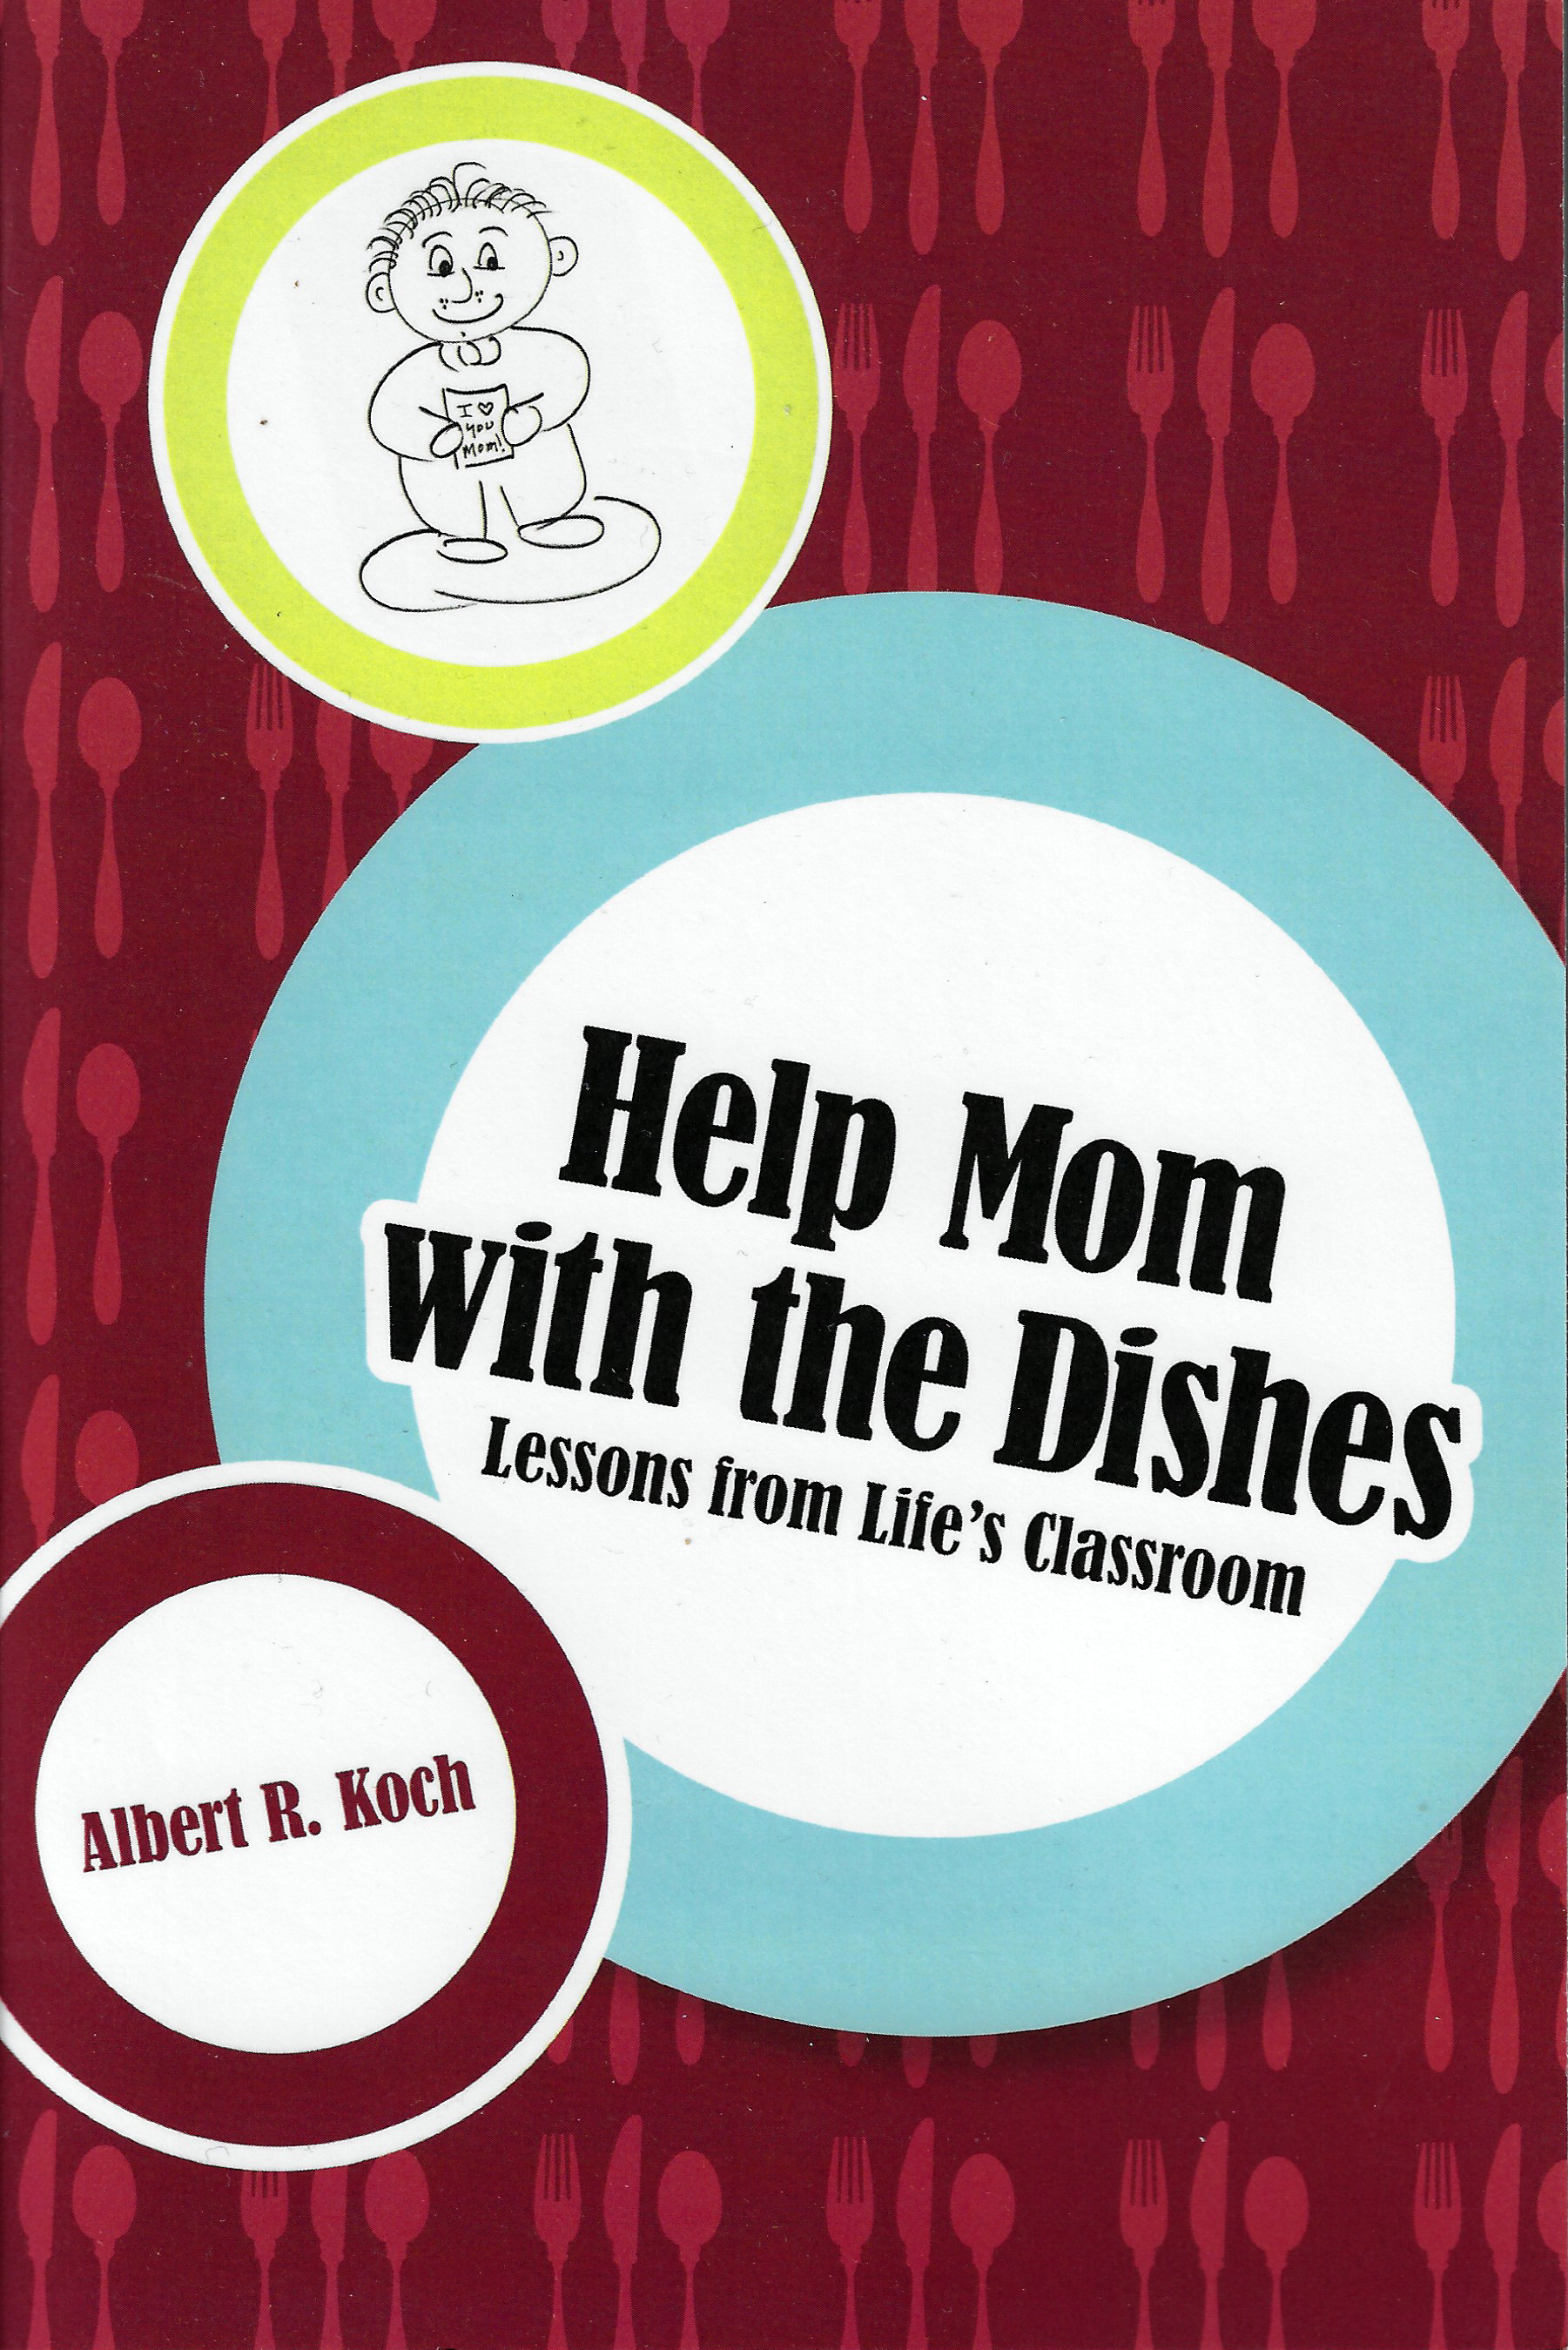 "Help Mom with the Dishes Albert R. Koch 2006  Born and raised in this ""industrial Mayberry,"" Al Koch relives his experiences in Whiting and beyond through a collection of essays.  Help Mom with the Dishes  is a journey through Koch's life. Over that time, he's learned an important lesson: The triumph over sadness is not easy. It requires an unflinching belief in the goodness of people, a positive sense of humor, and a little faith and reverence for things we cannot see."